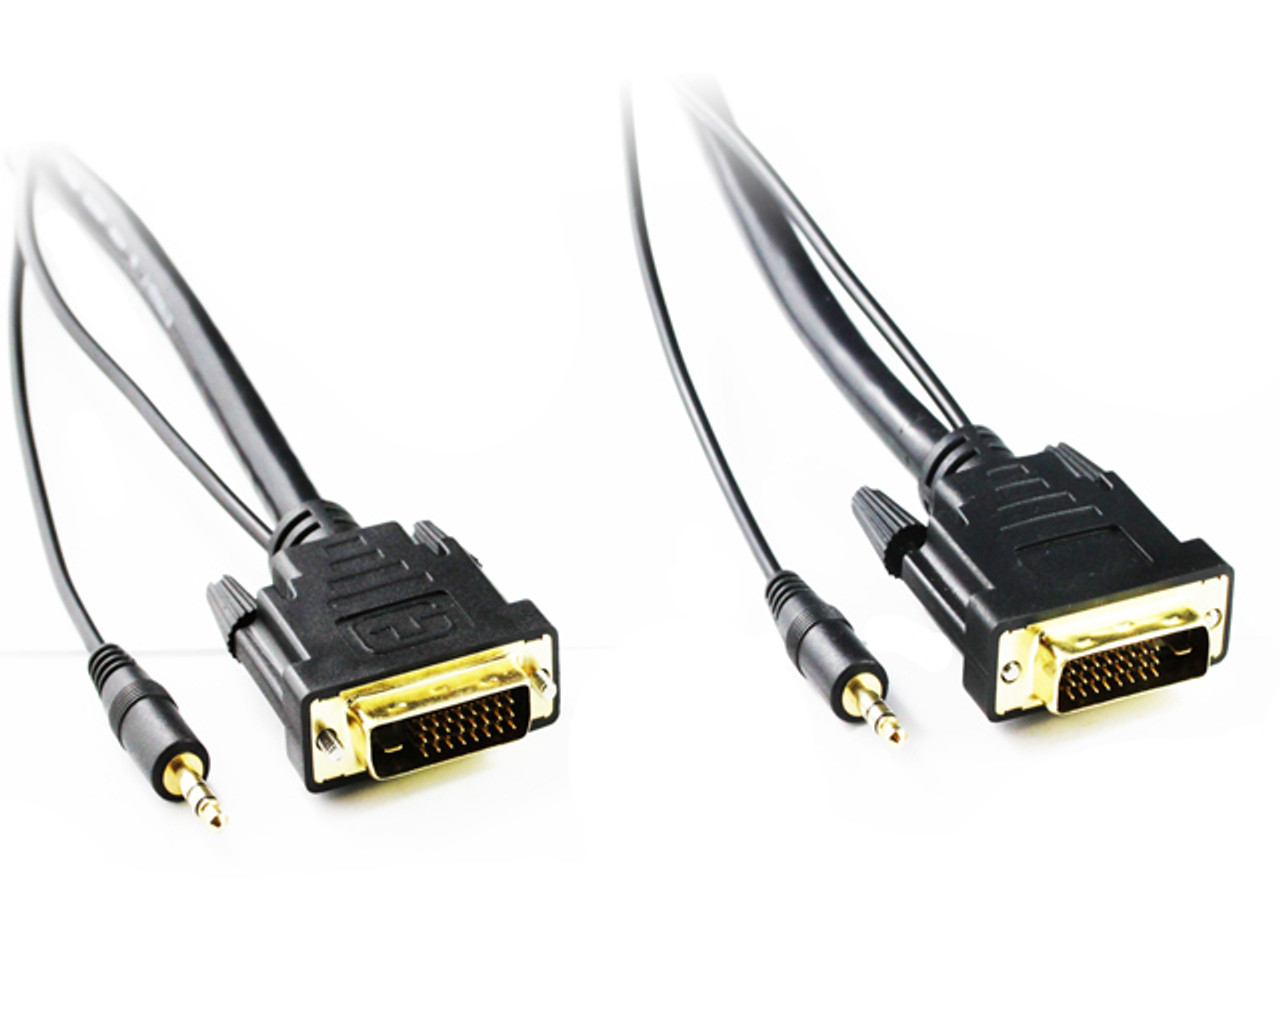 Product image for 10M DVI-D to DVI-D Cable with 3.5mm Audio | CX Computer Superstore